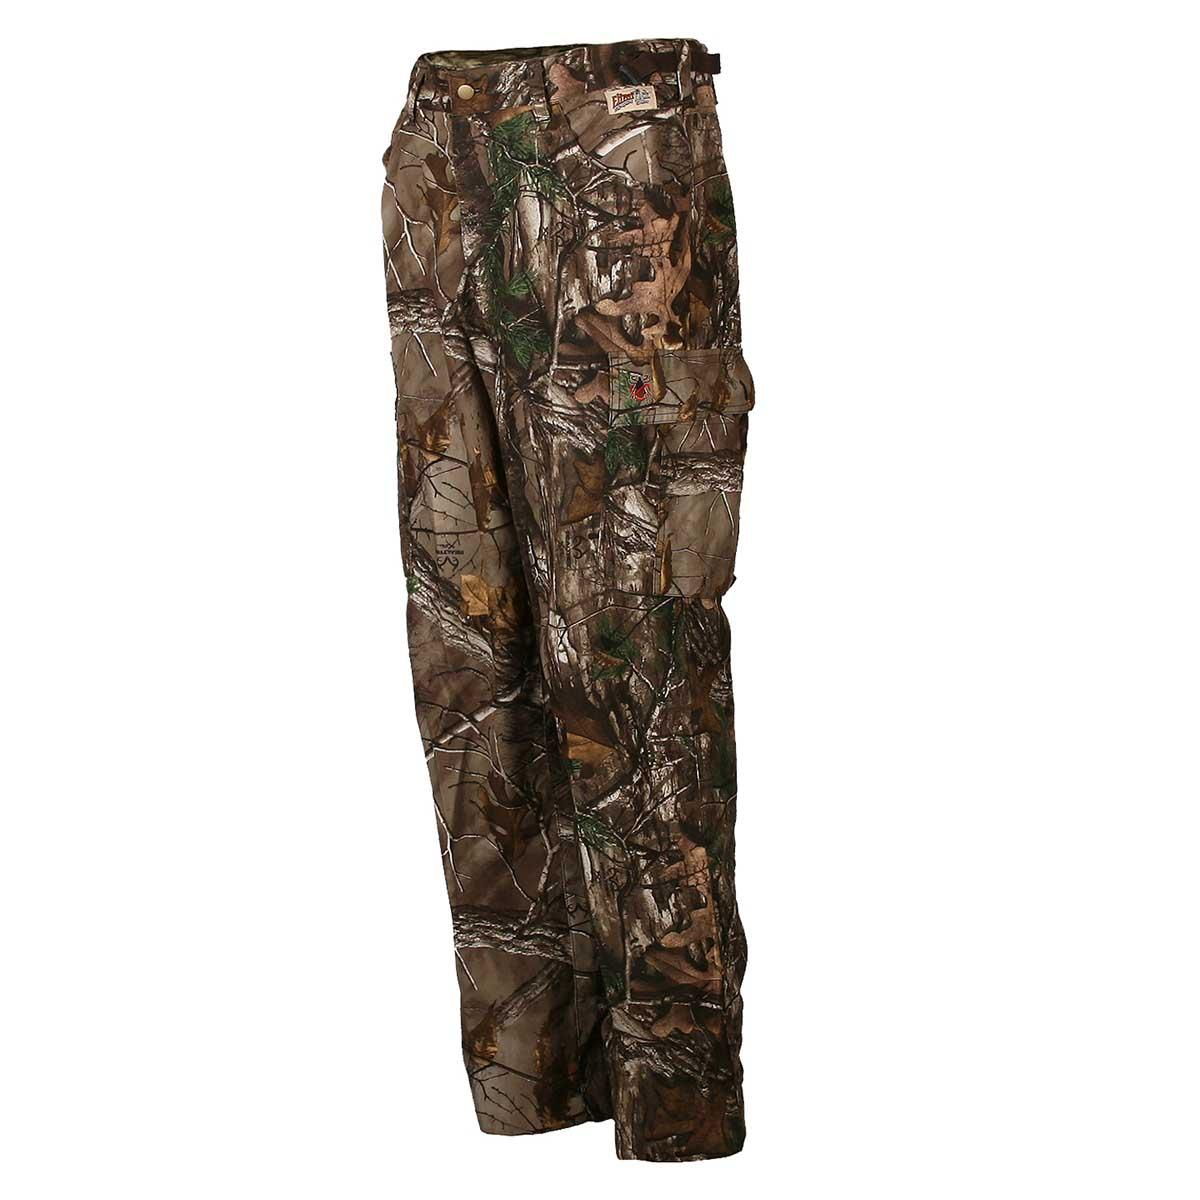 Gamehide Elimitick Insect Repellent Five Pocket Pant, Realtree Xtra_1.jpg